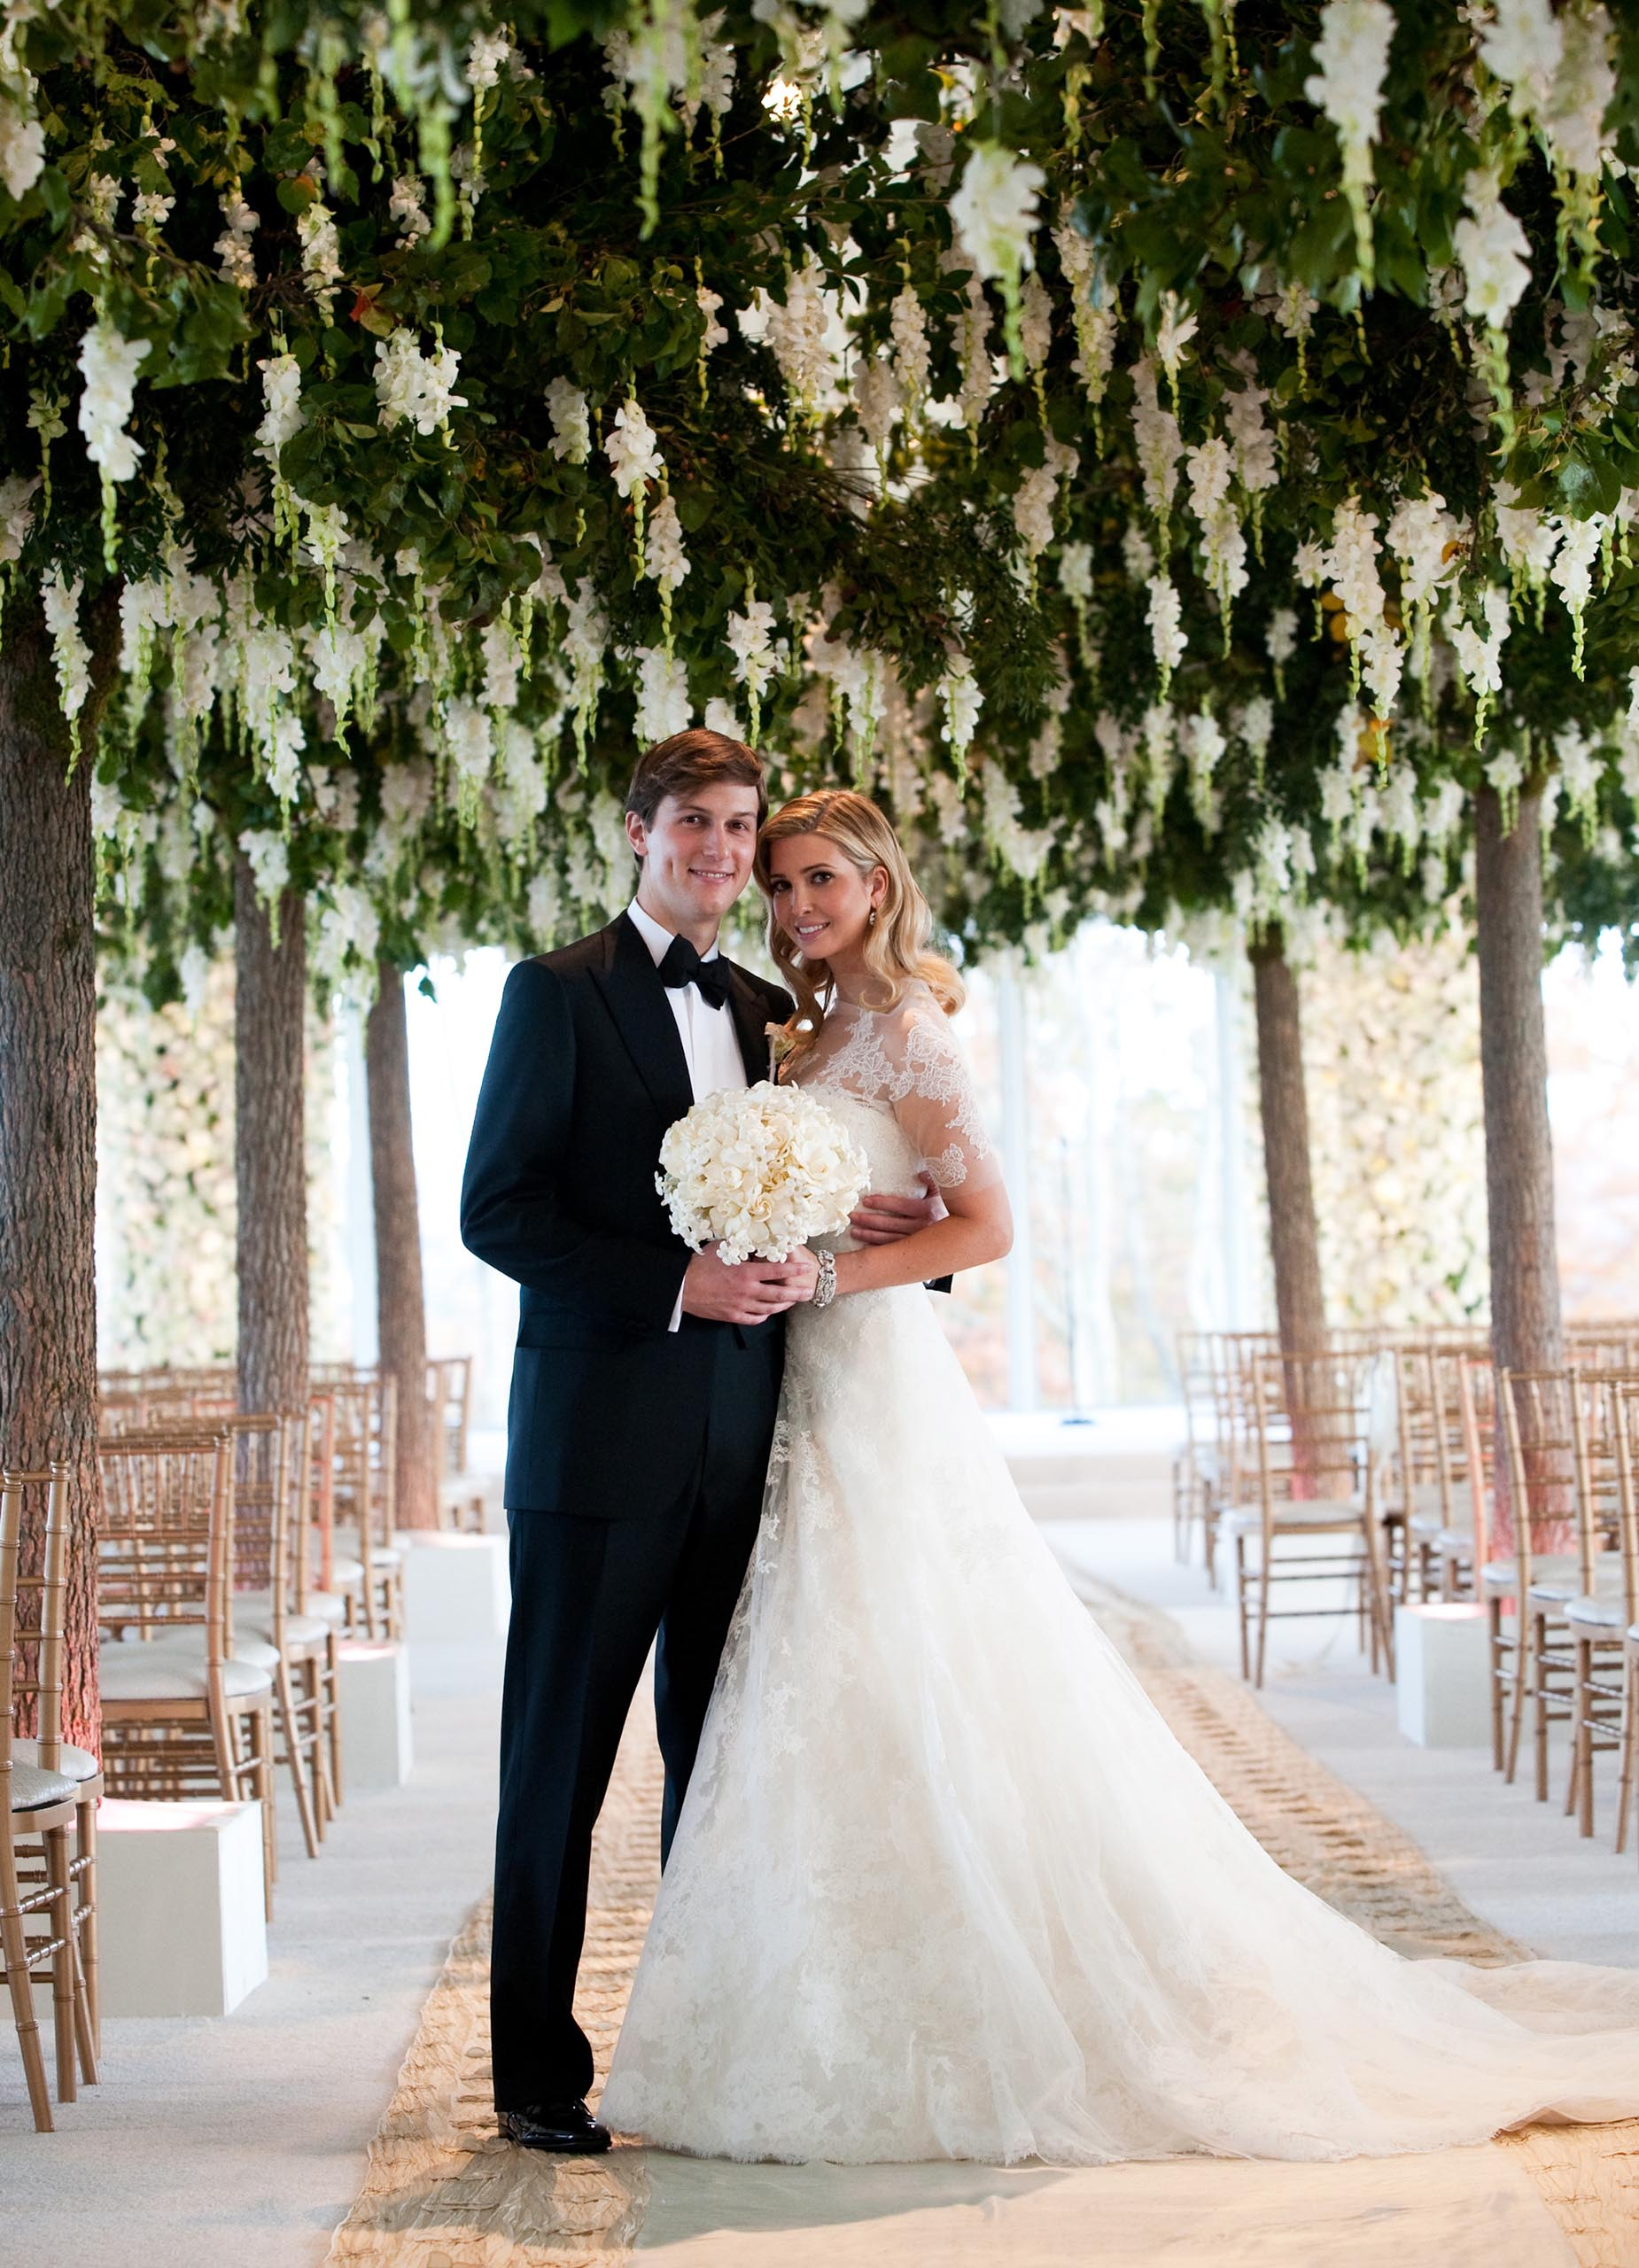 Ivanka Trump and Jared Kushner at their wedding at Trump National Golf Club, Bedminster, New Jersey. Oct. 25, 2009.